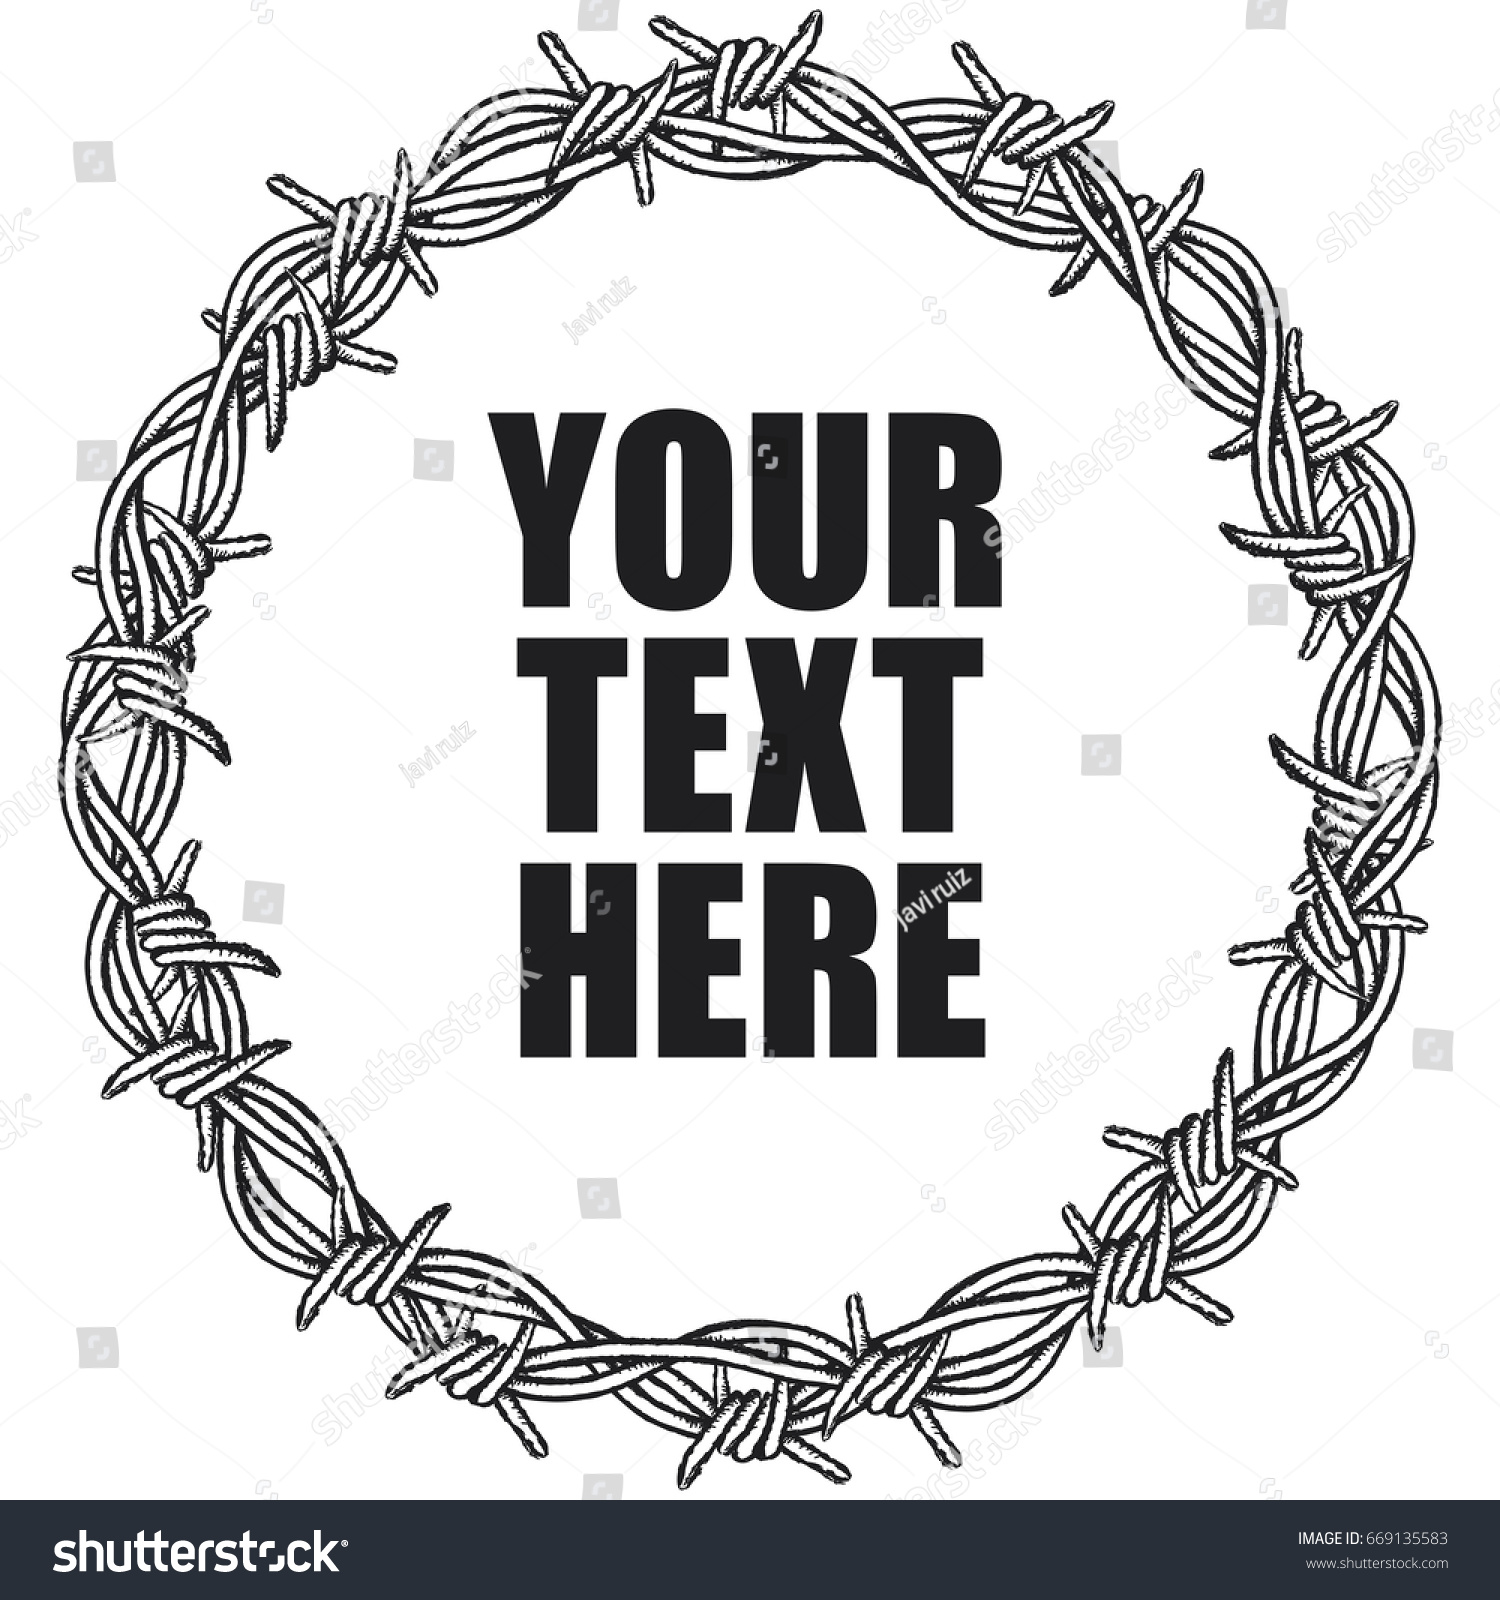 Circular Border Barbed Wire Clipart Illustration Stock Vector ... for Wire Clipart Black And White  268zmd